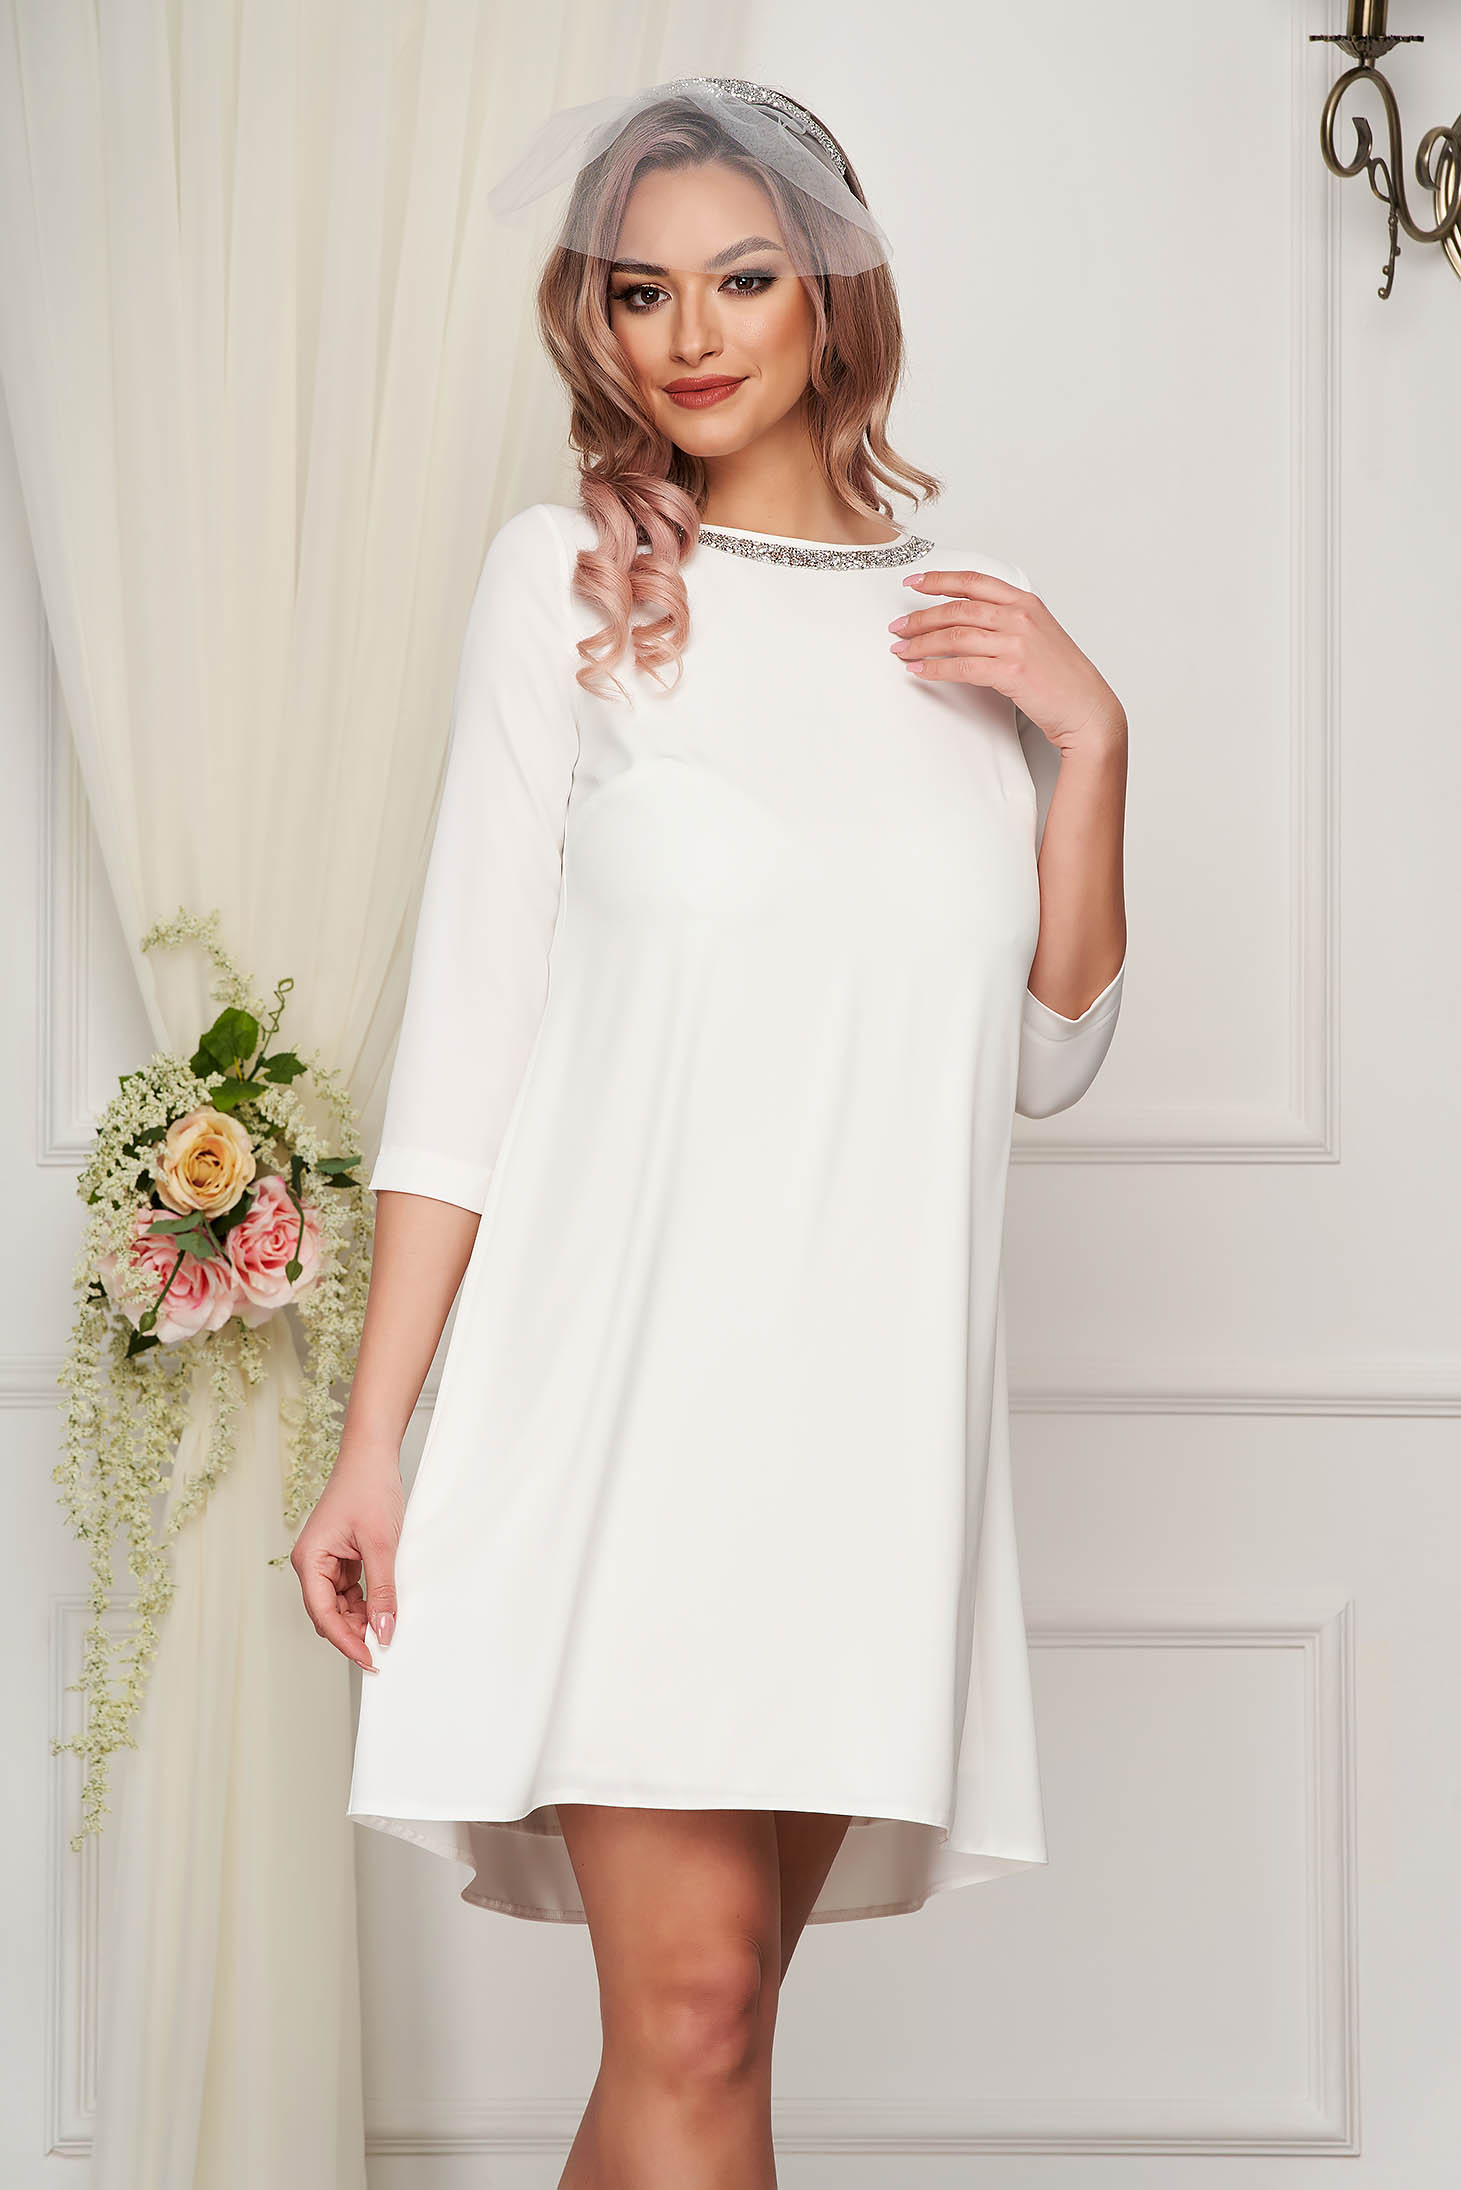 Elegant dress short cut white StarShinerS cloth with 3/4 sleeves loose fit